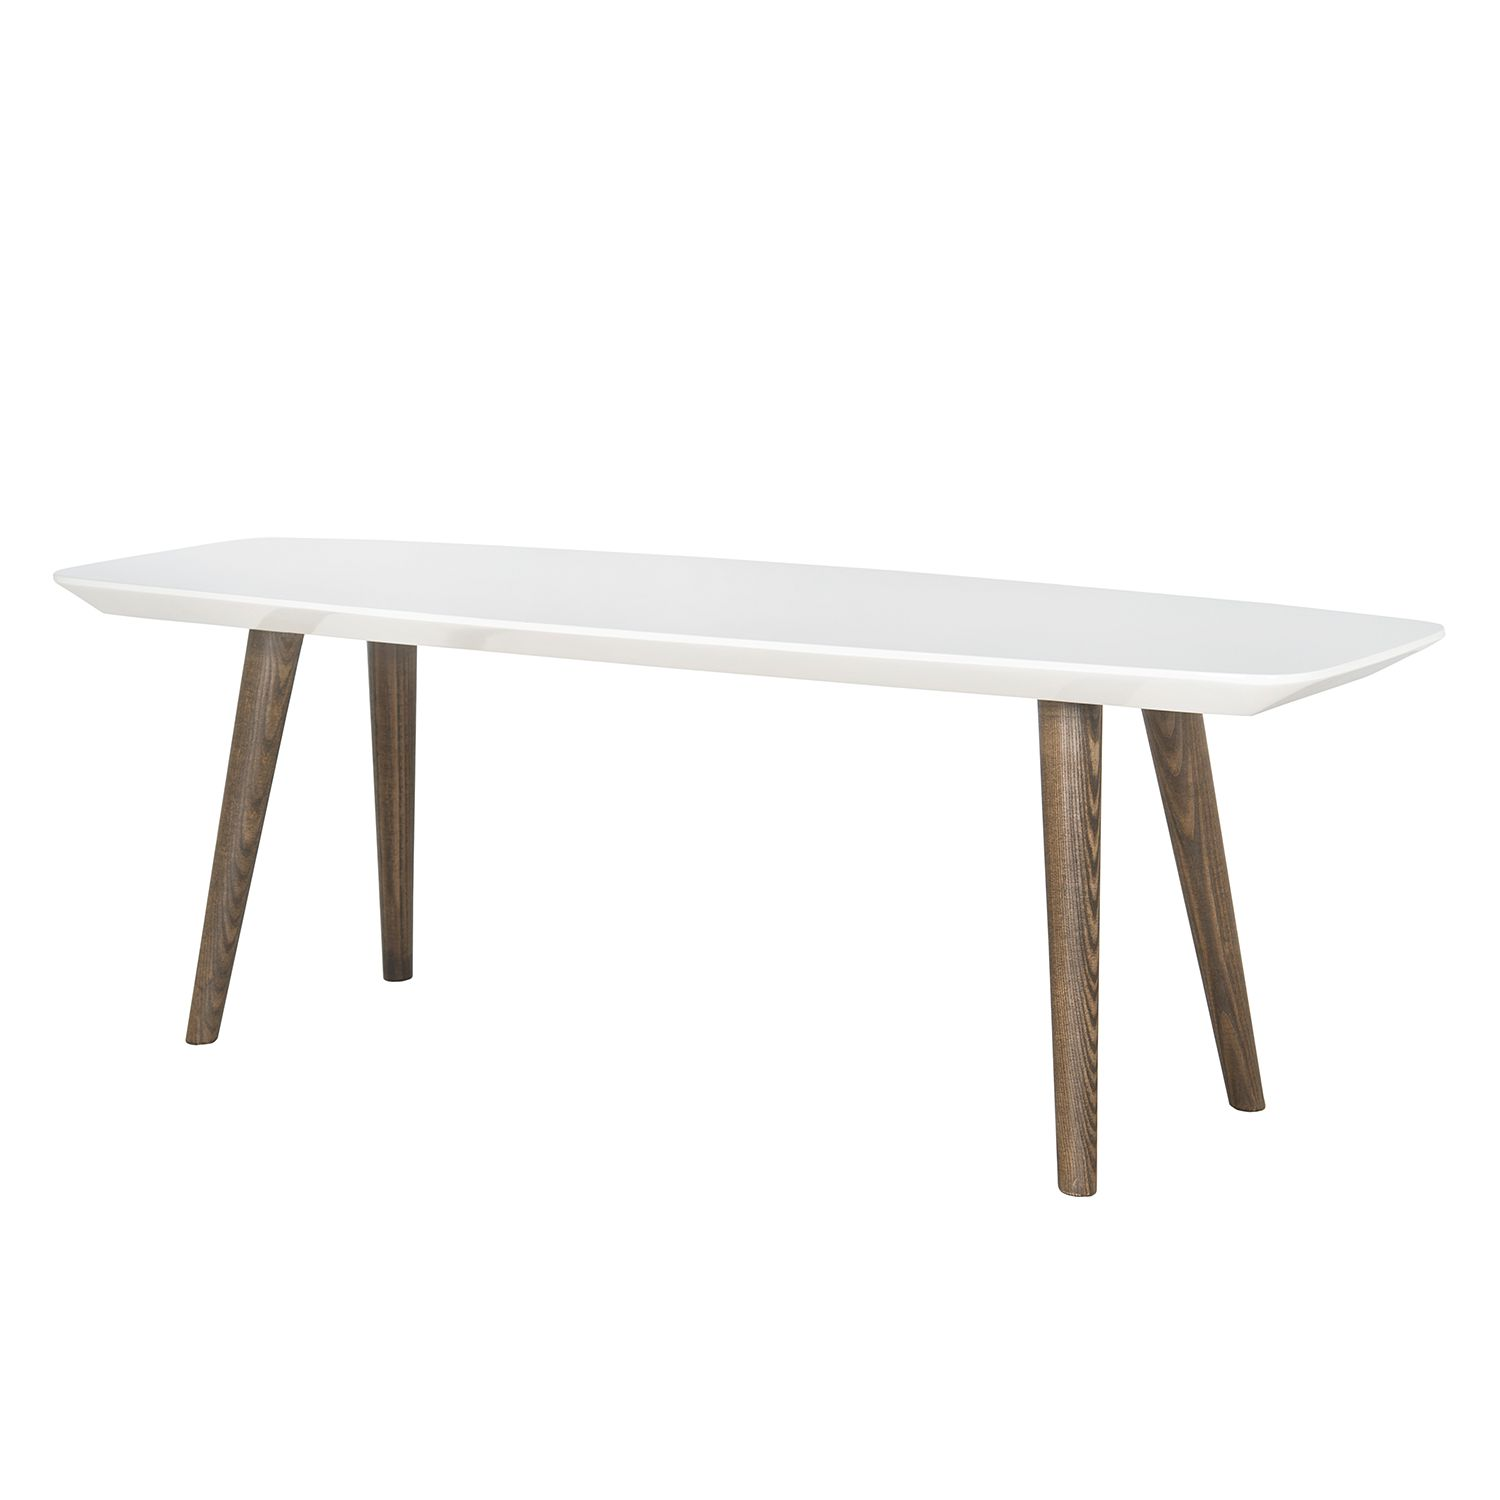 Table basse Josiah I - Fer - Blanc / Marron, Safavieh